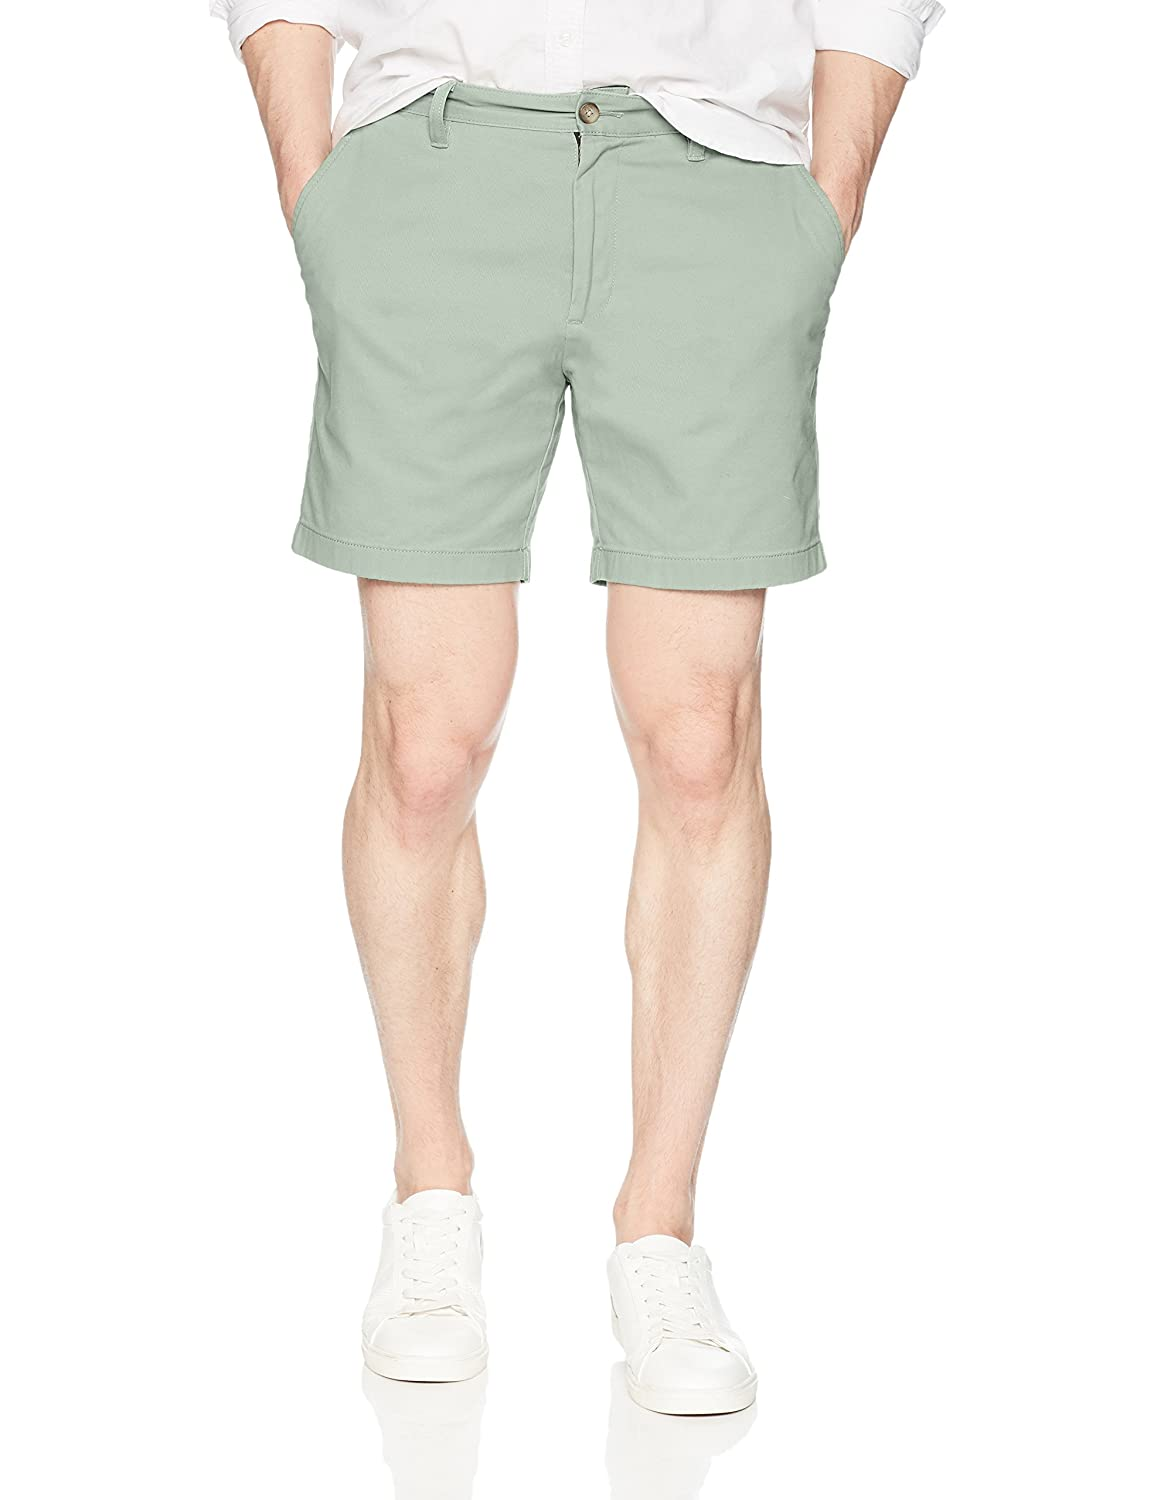 Nautica Men's Cotton Twill Flat Front Stretch Chino Short